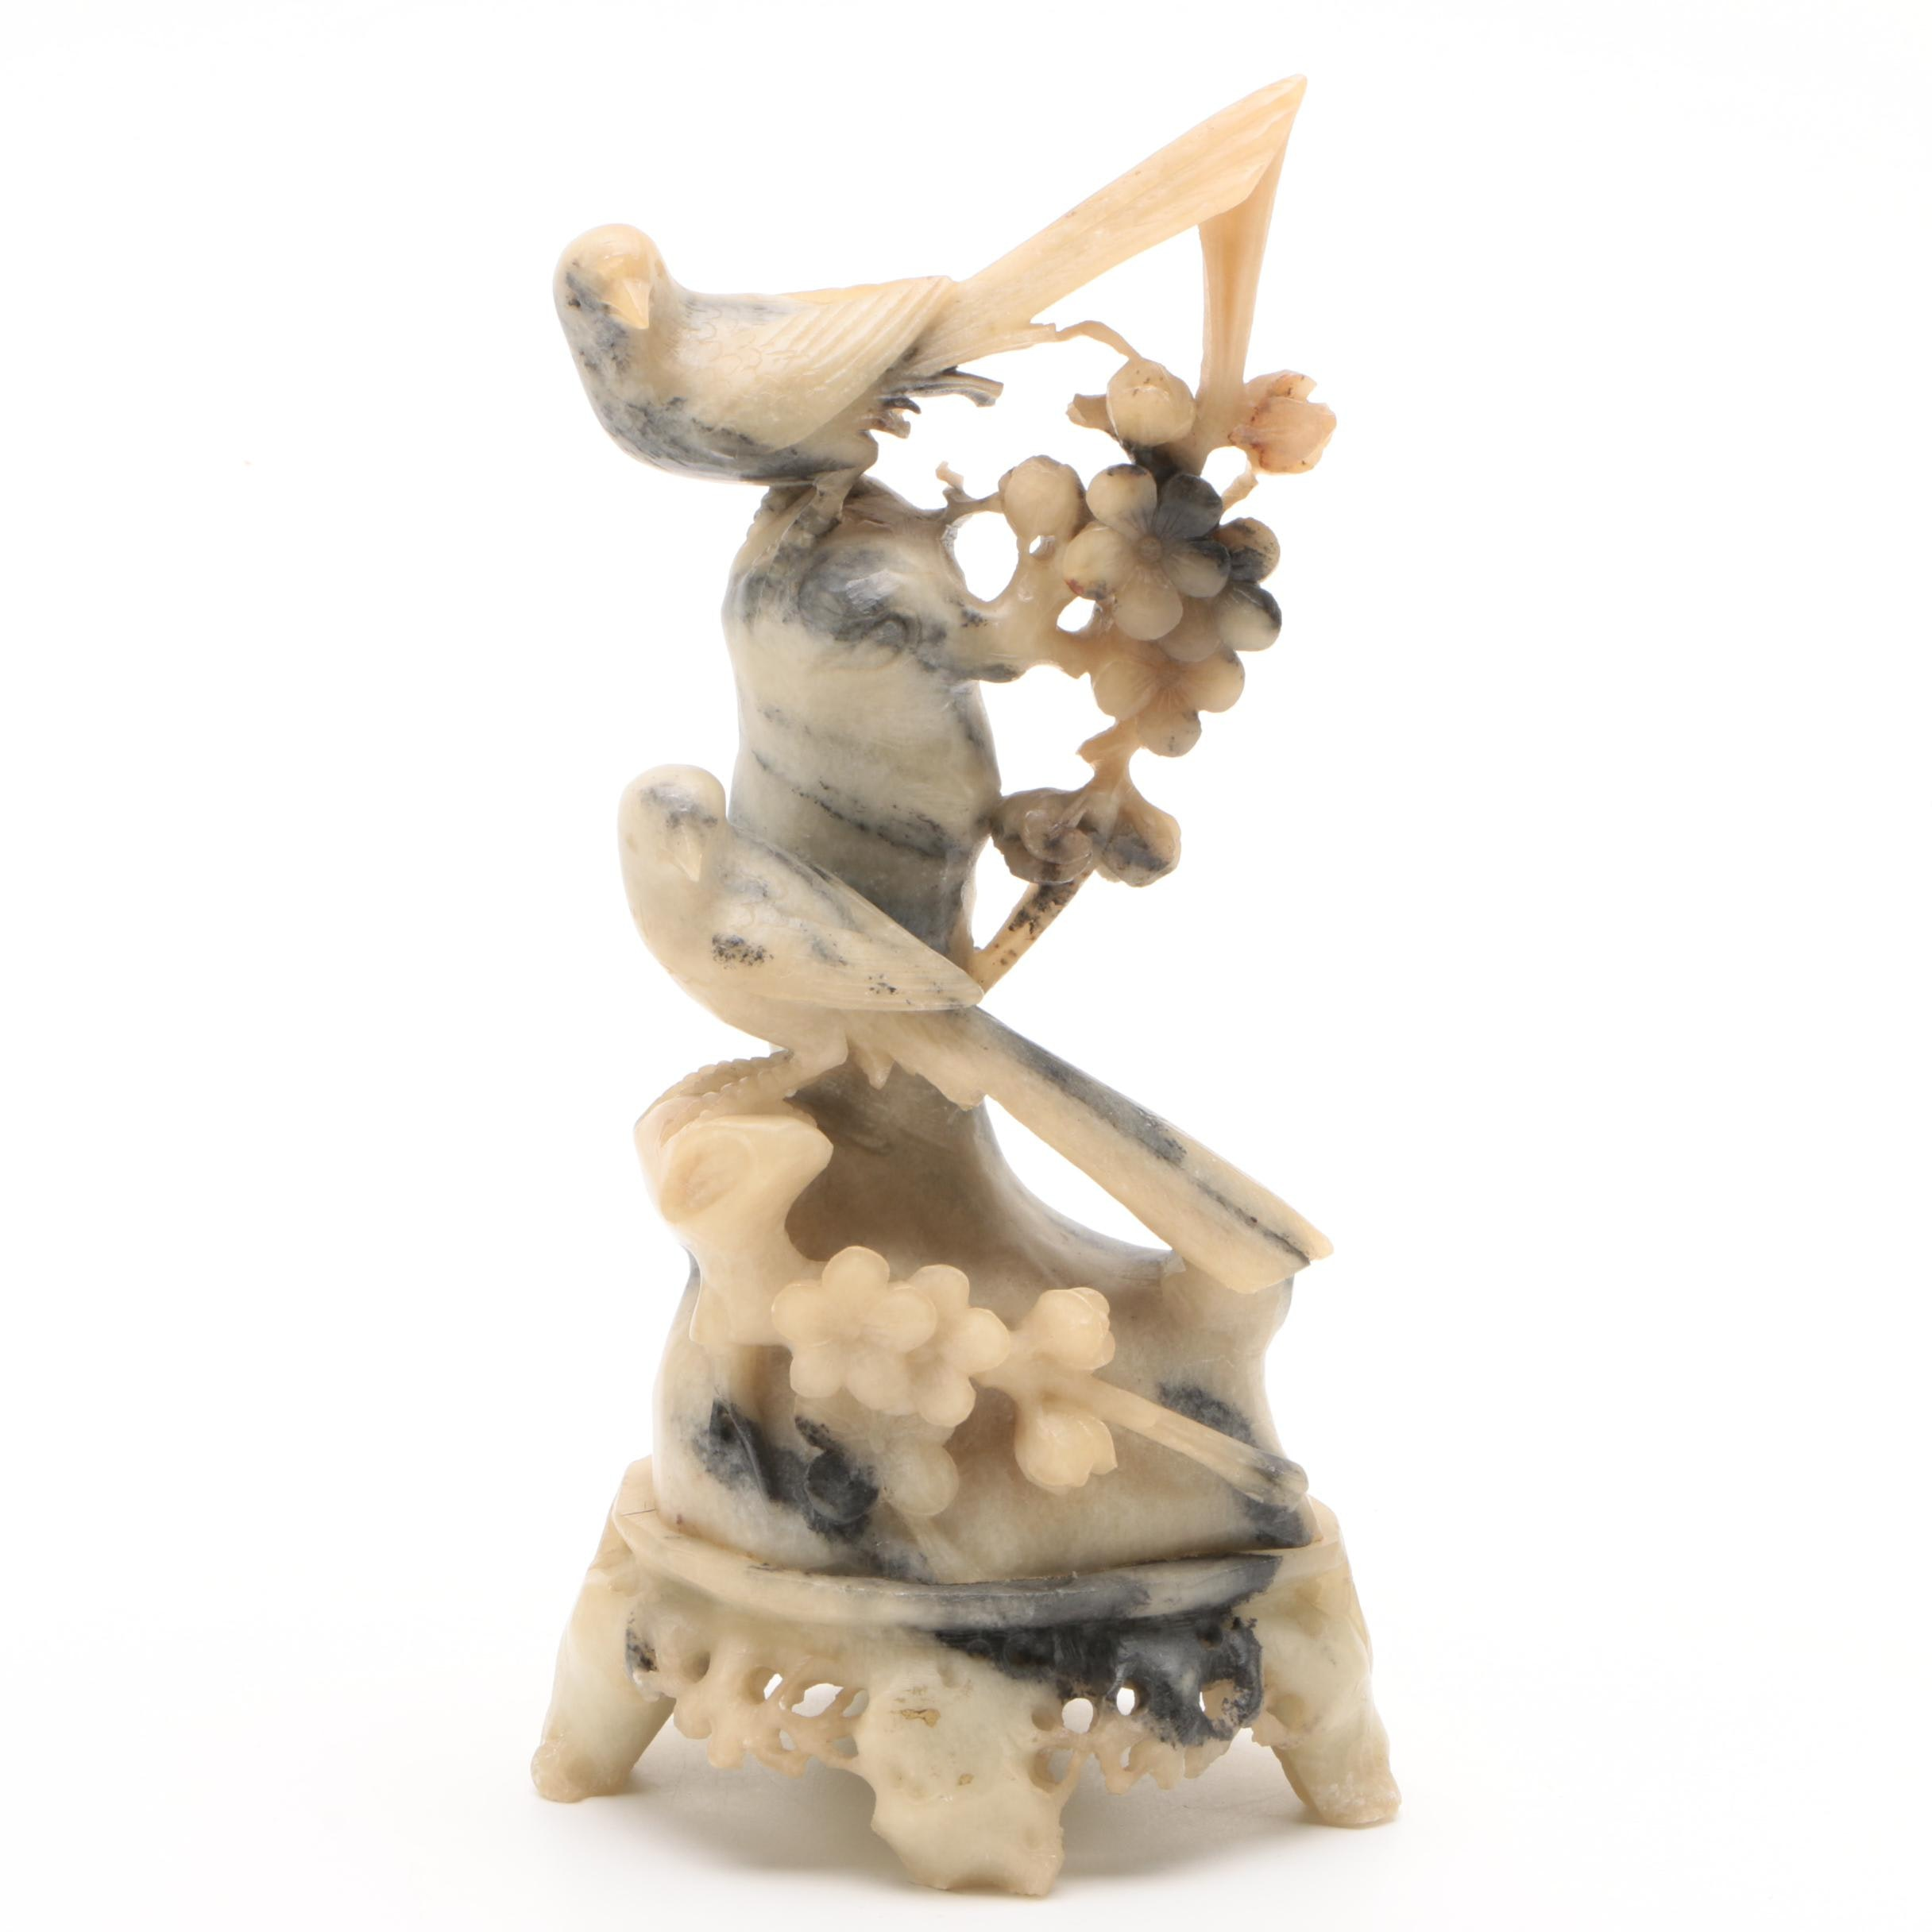 Chinese Carved Soapstone Figurine of Birds